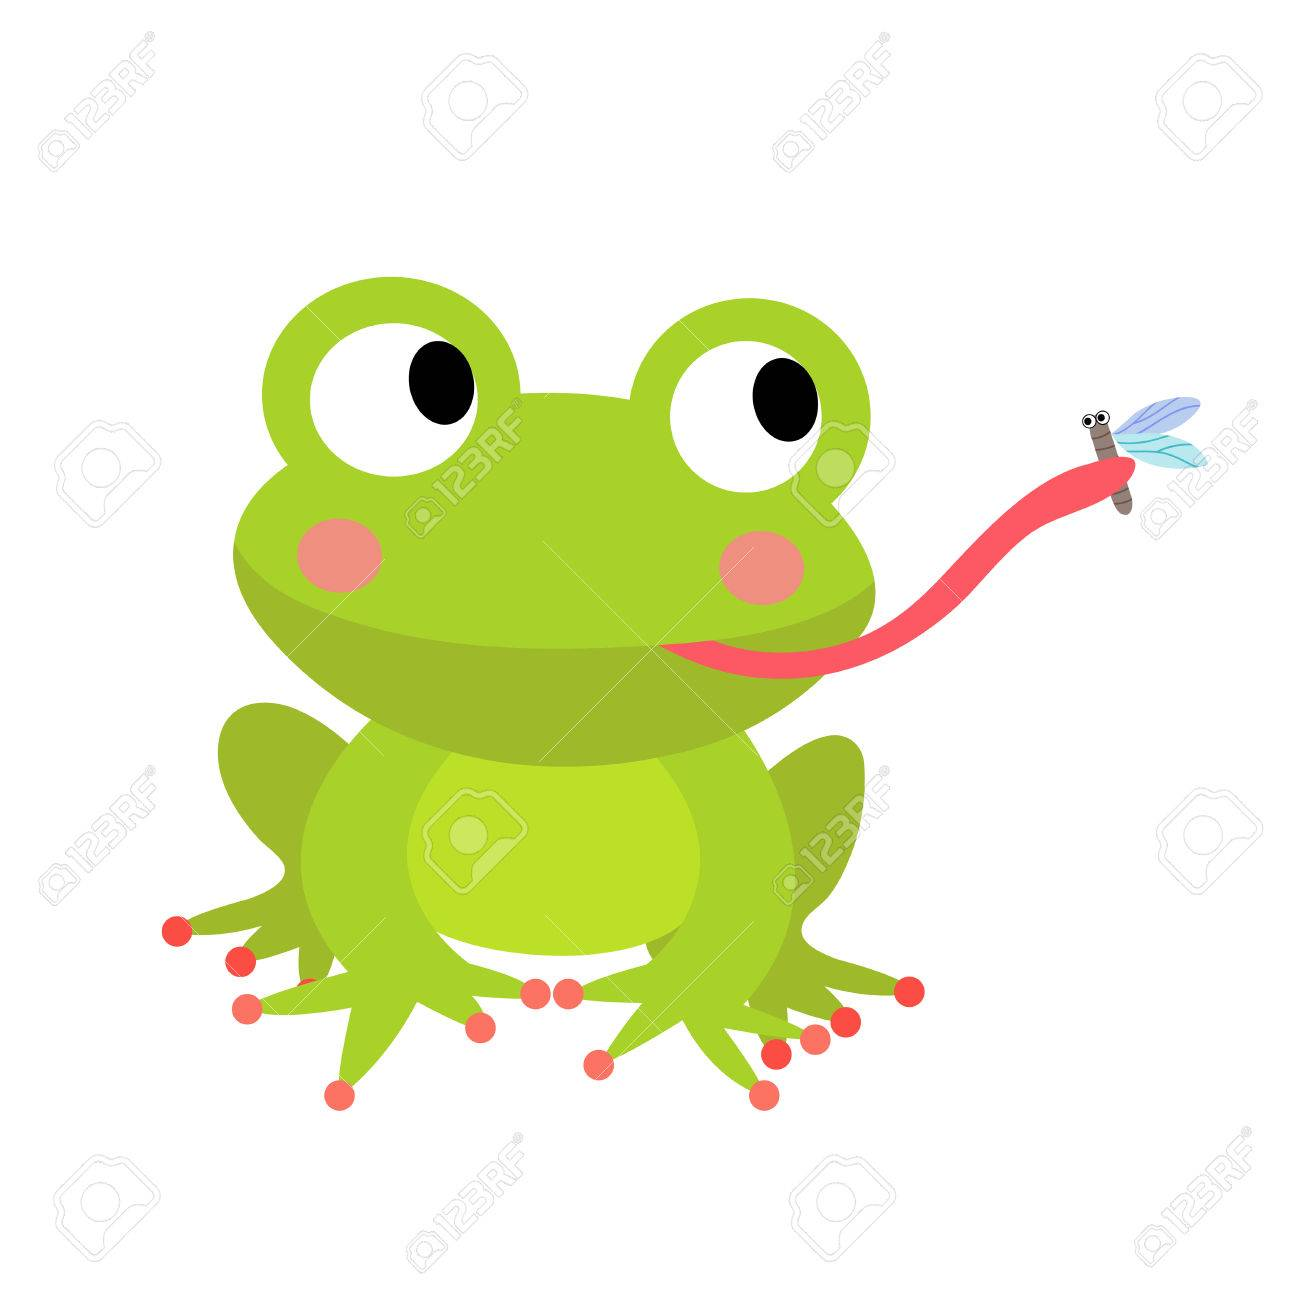 Frog eating fly animal cartoon character. Isolated on white background. Vector illustration. - 61302474